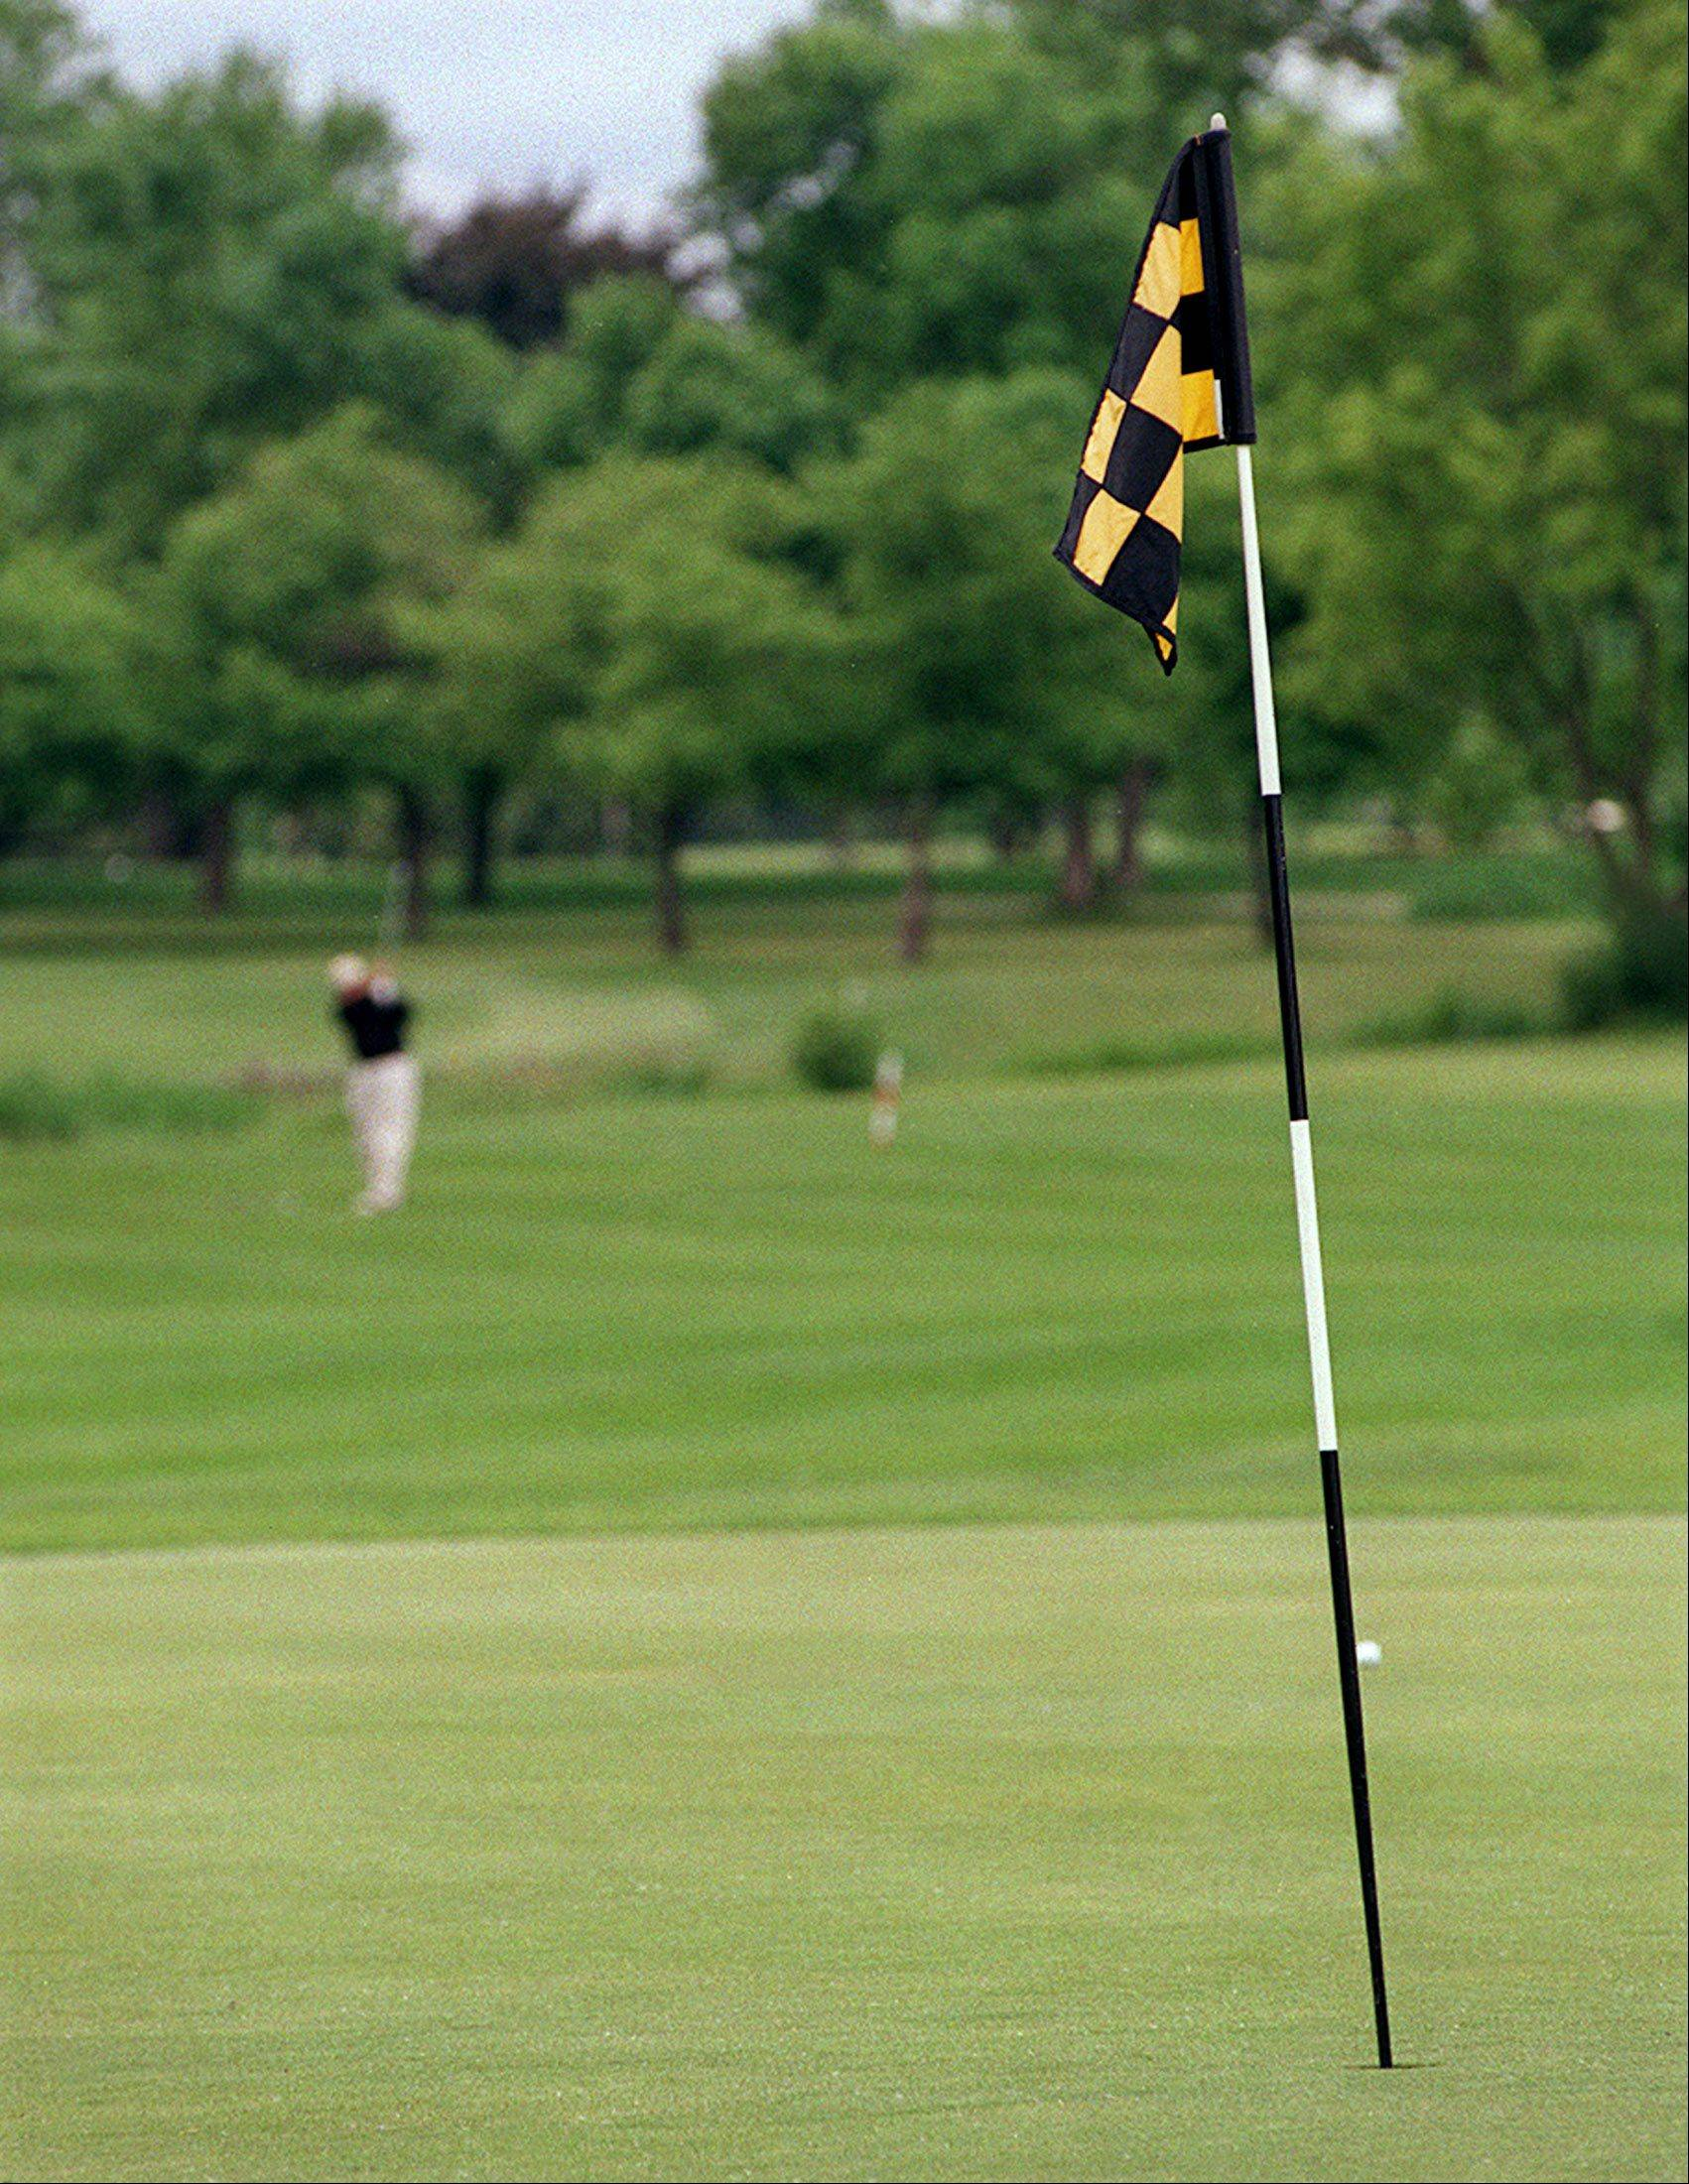 Subsidies for the village's two golf courses is one reason Buffalo Grove officials say they might face deficits over the next five years. However, officials note, the size of the subsidy will decline from $150,000 to $25,000 between 2014 and 2018.